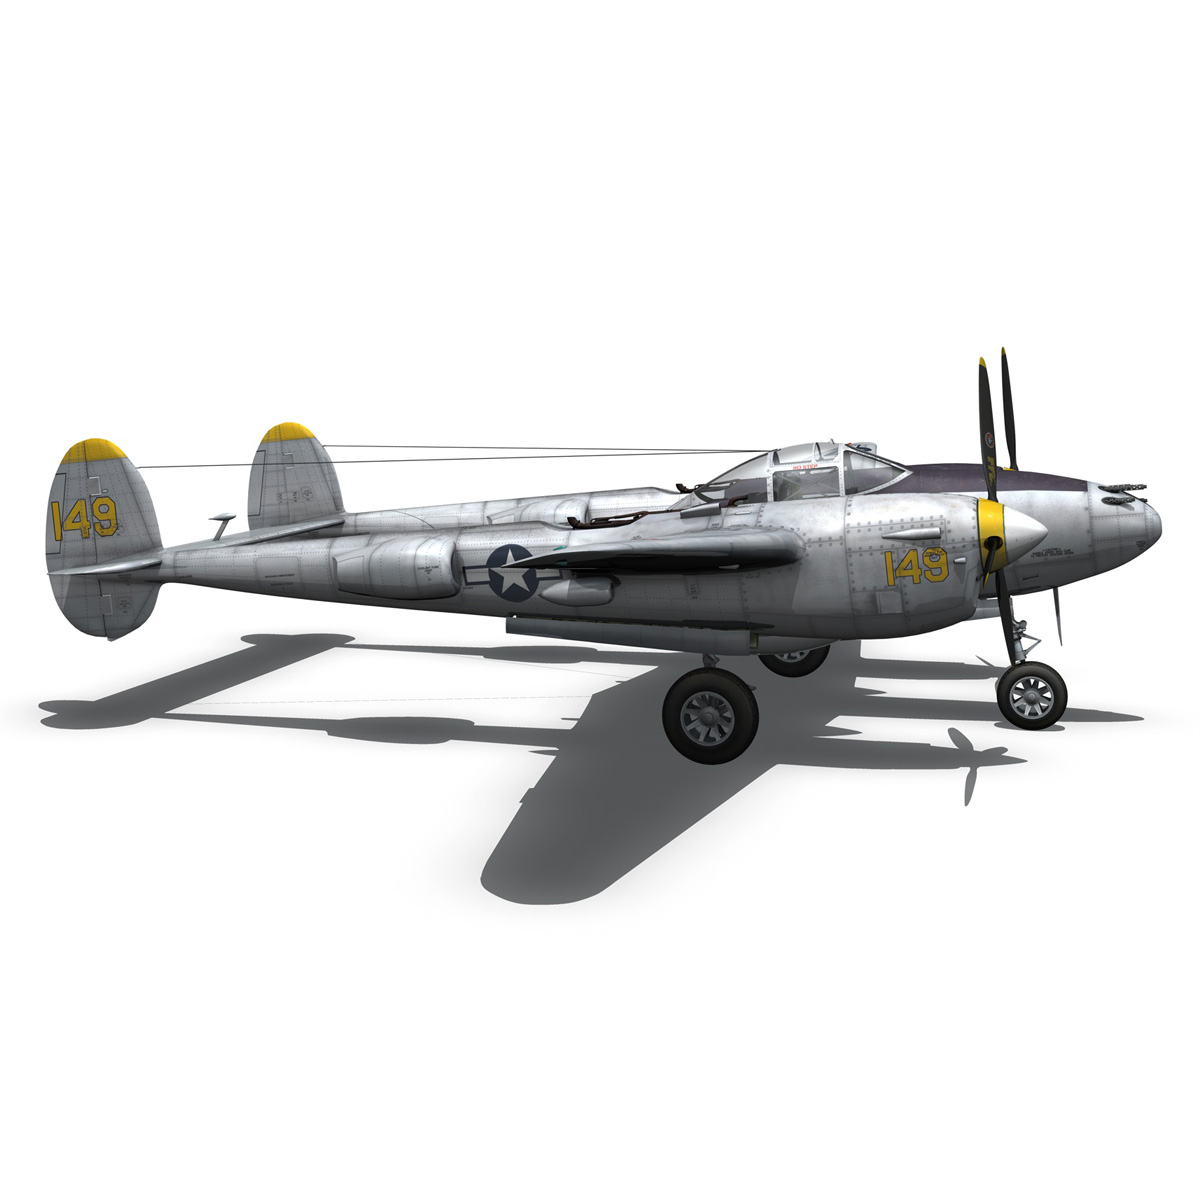 lockheed p-38 lightning – florida cracker 3d model fbx c4d lwo obj 279427